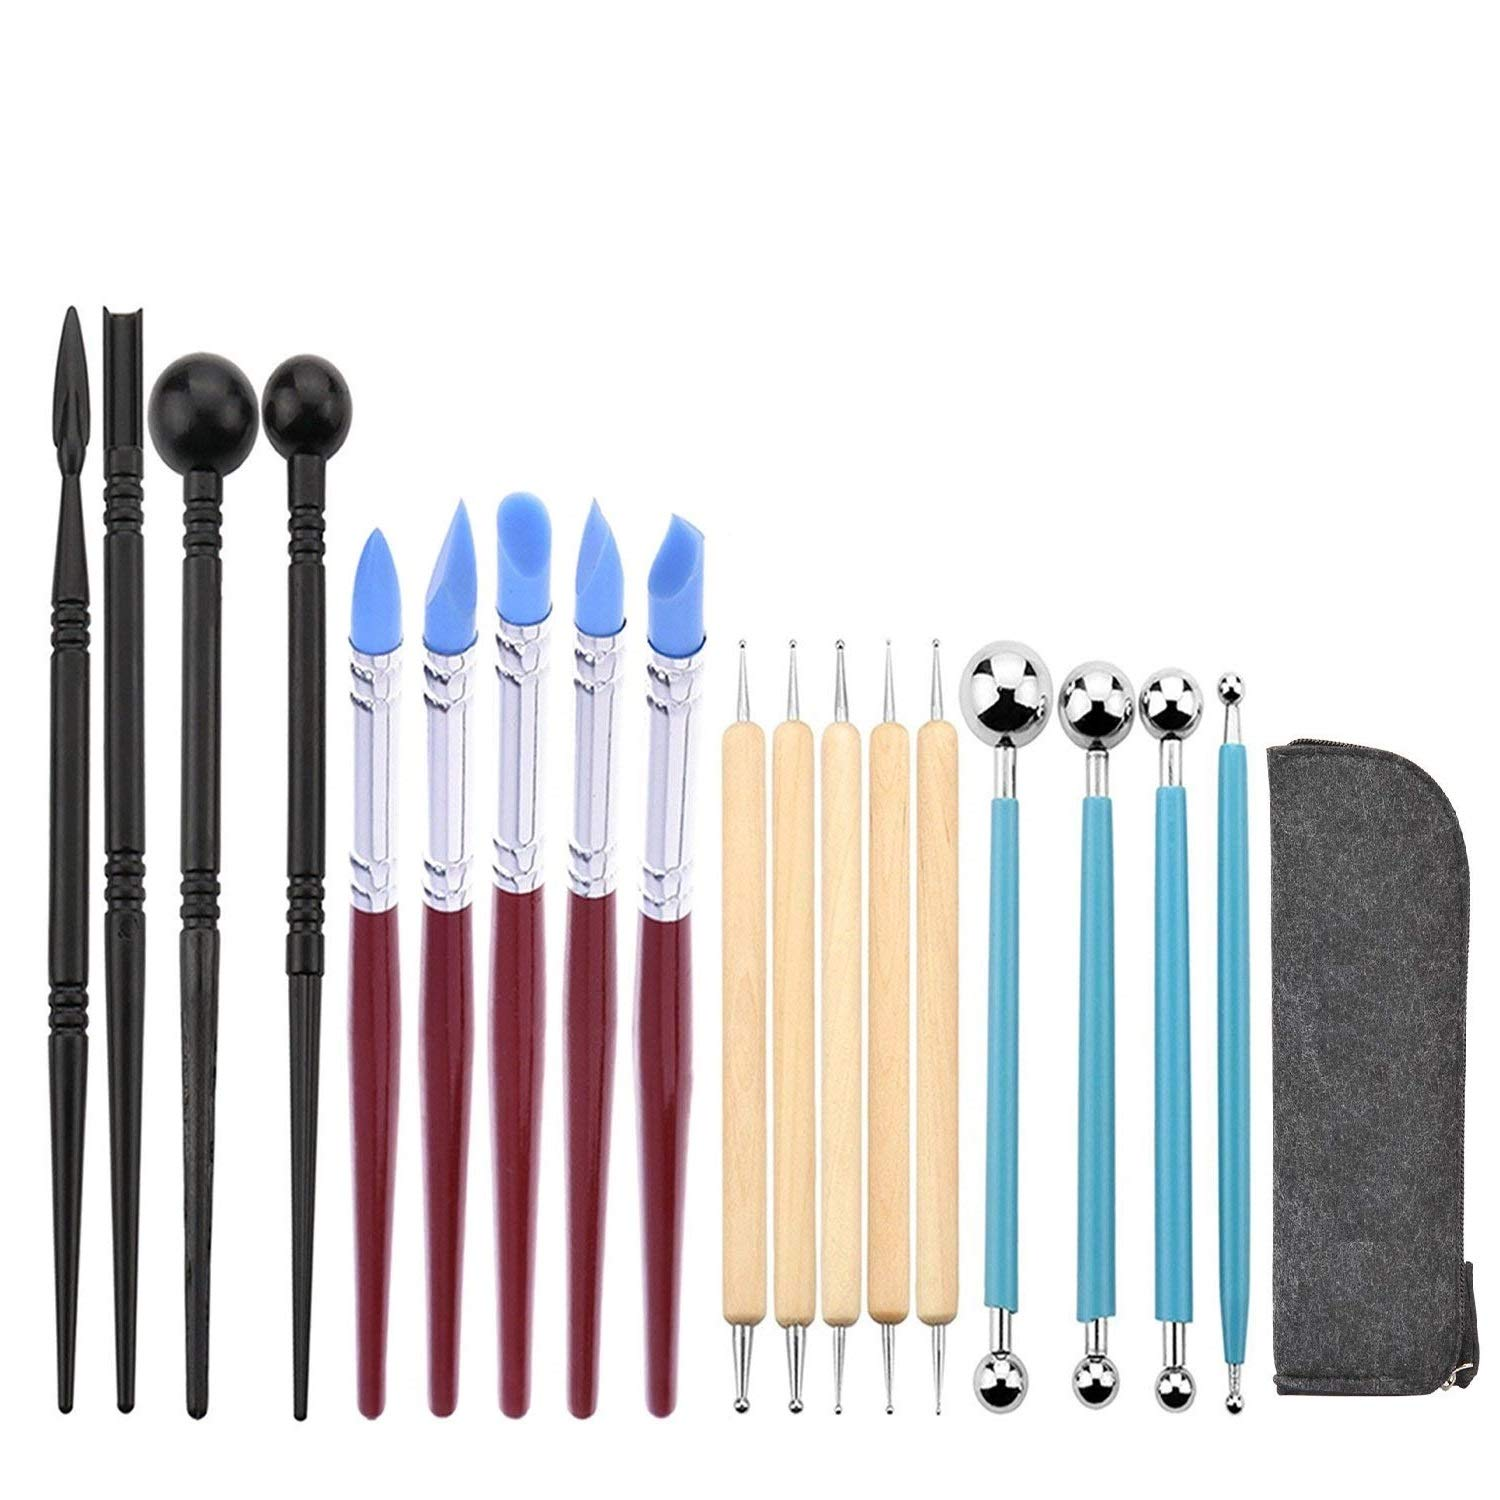 Ball Stylus Dotting Sculpting Kit - Jaybva Polymer Clay Sculptures Tools Rubber Tip Pens for Pottery Rock Painting Ceramics Doll Modeling Carving Embossing Paper Flowers 18pcs